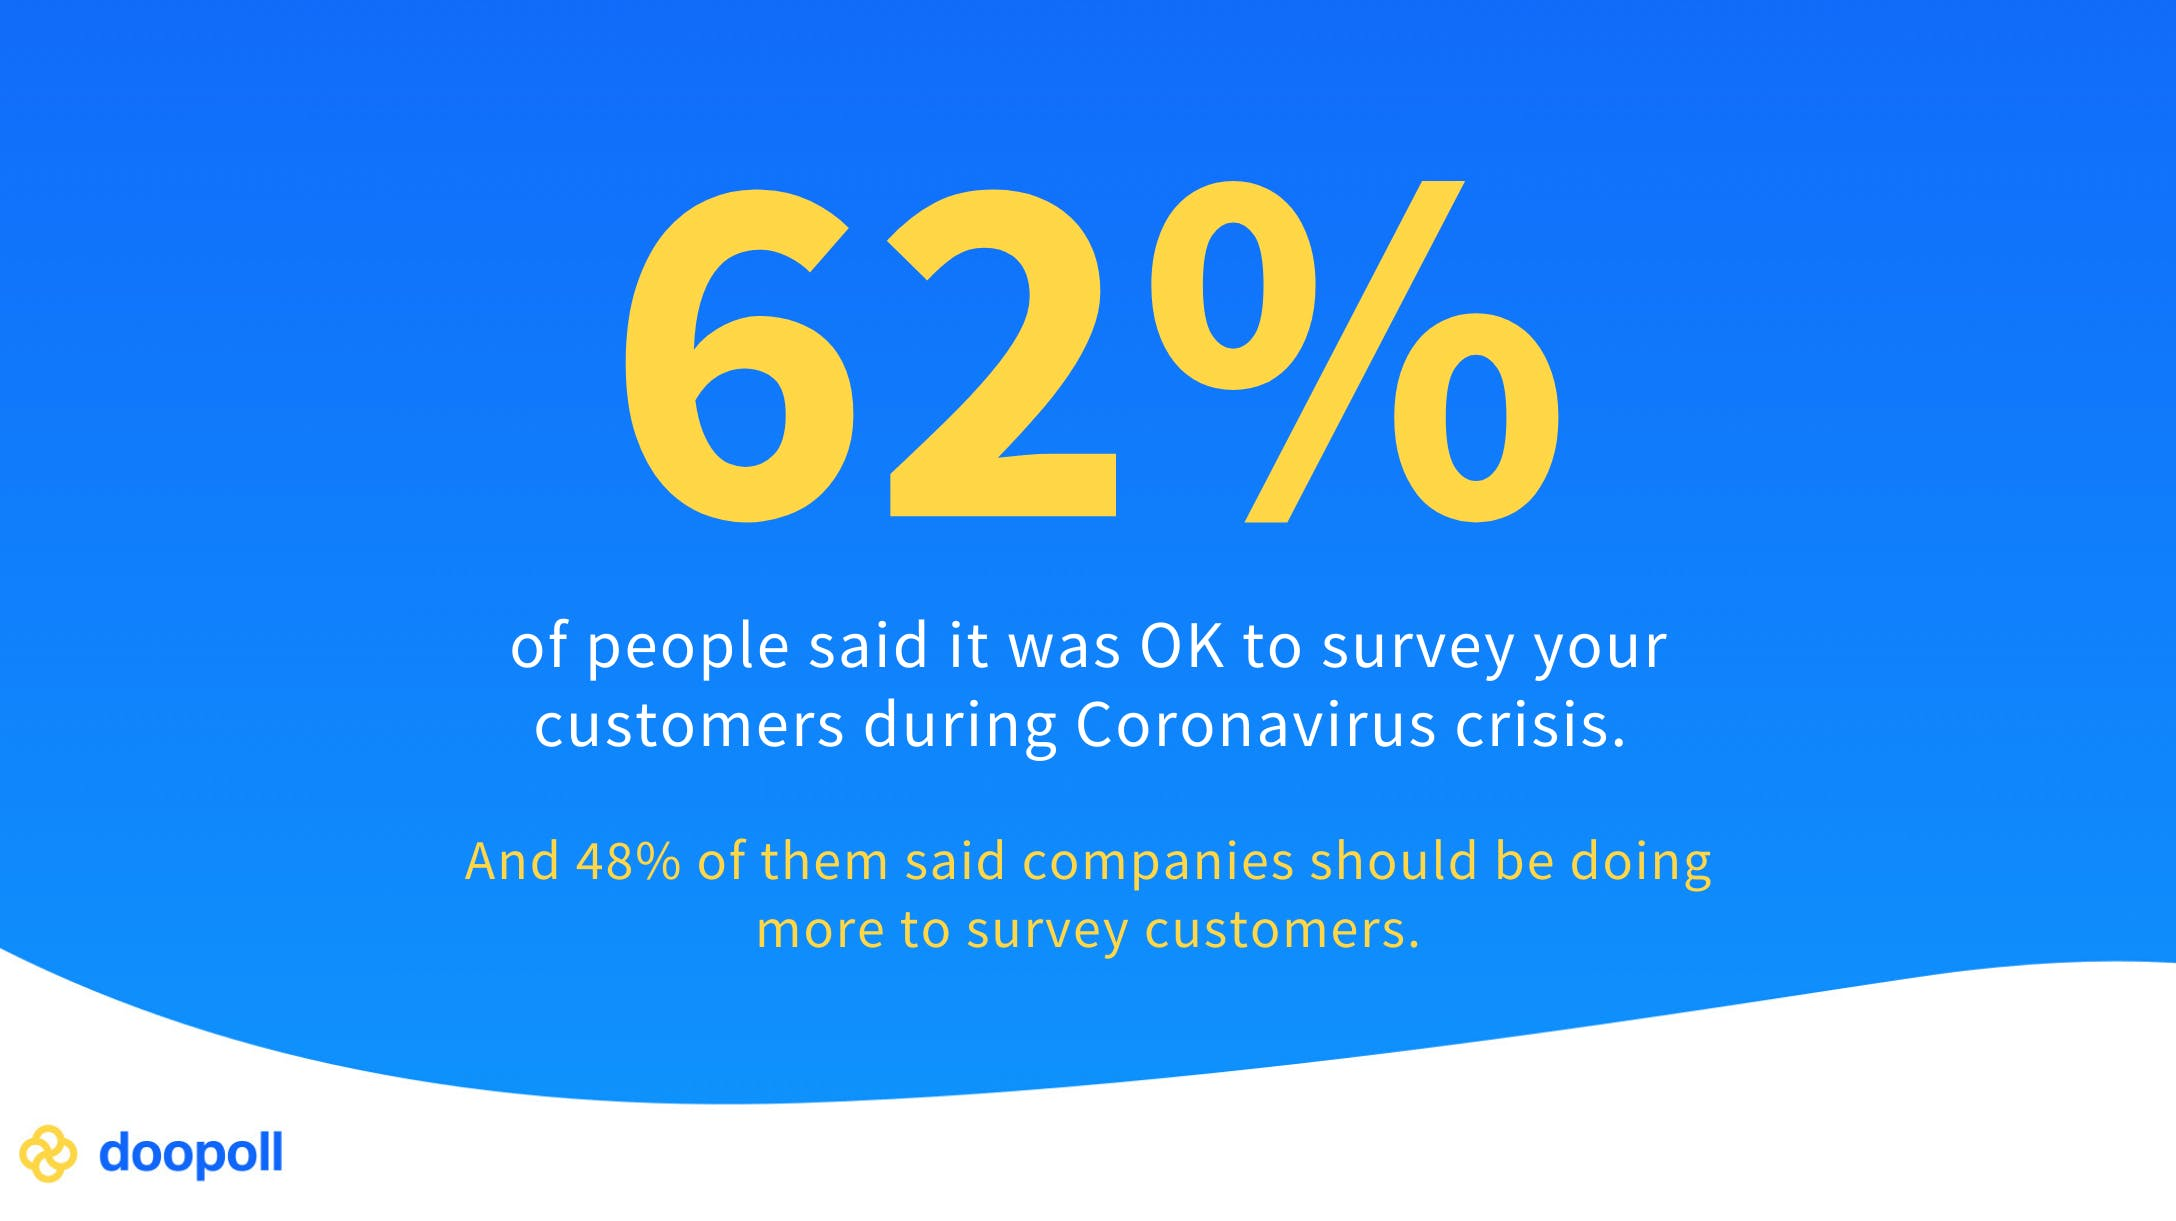 62% think it's OK to survey customers during Coronavirus